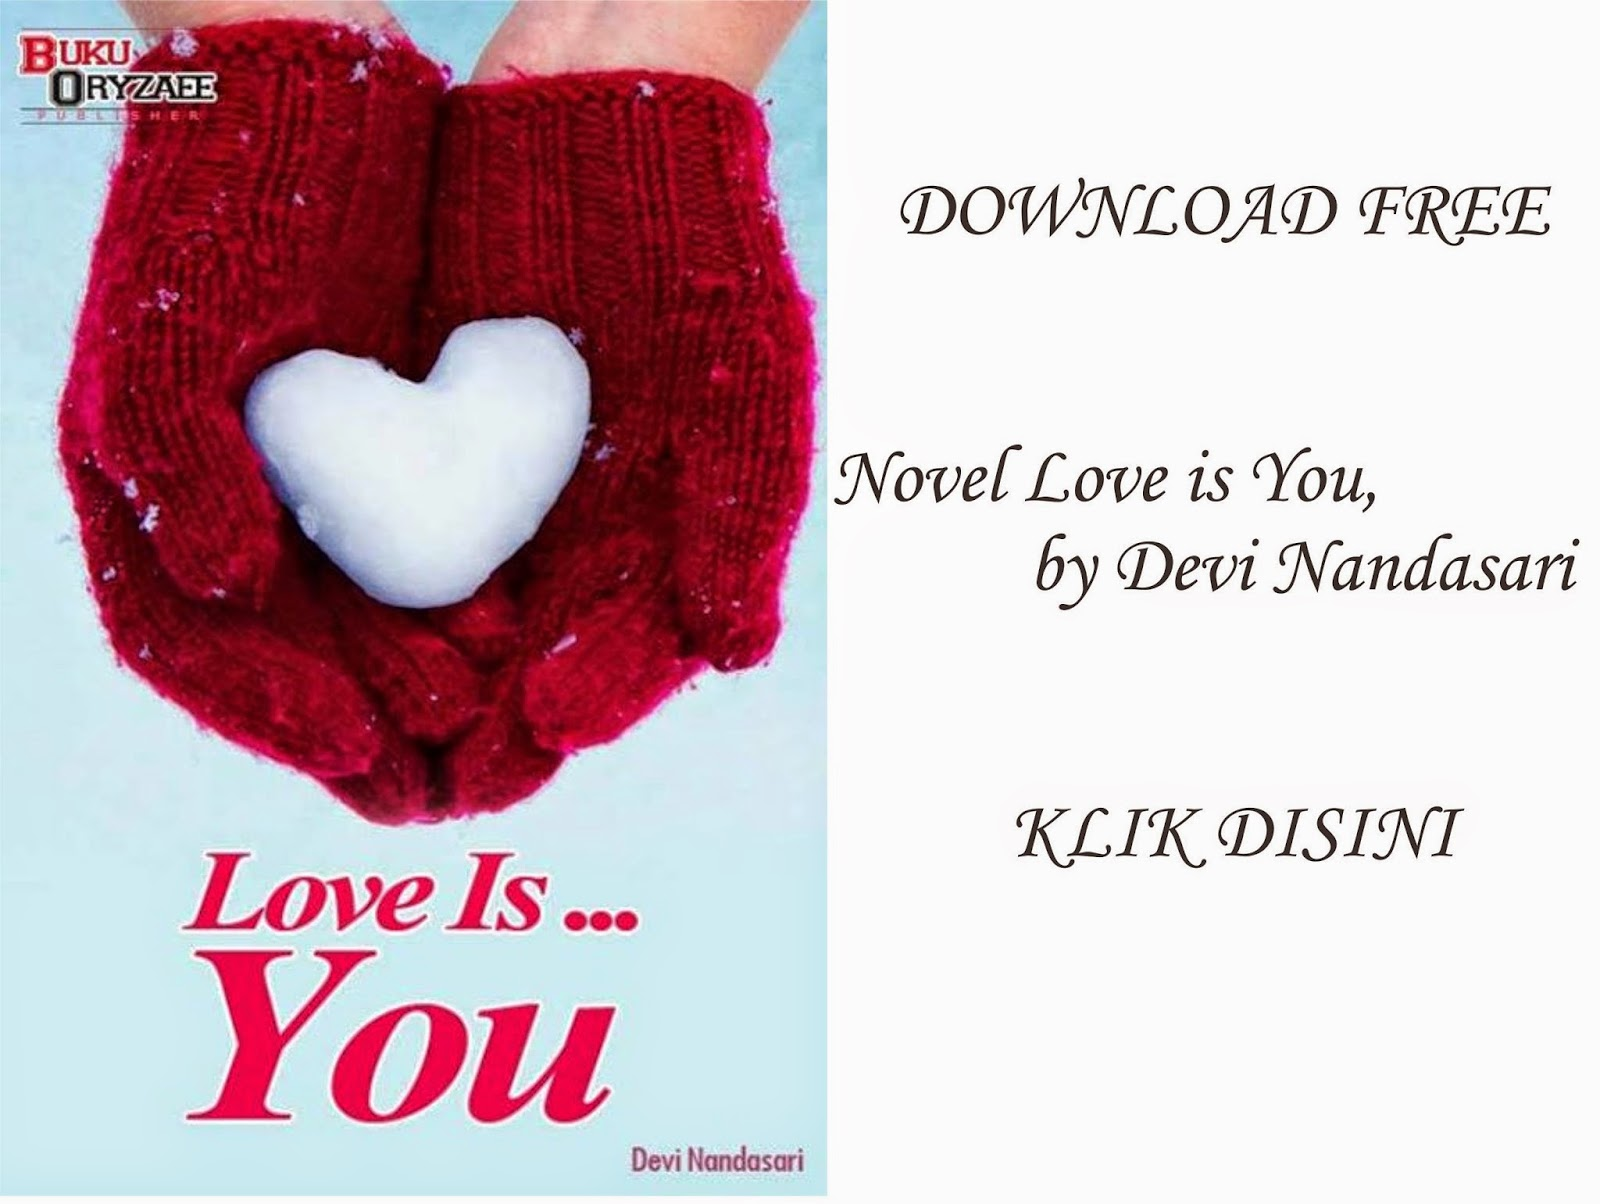 DOWNLOAD NOVEL LOVE IS YOU FREE